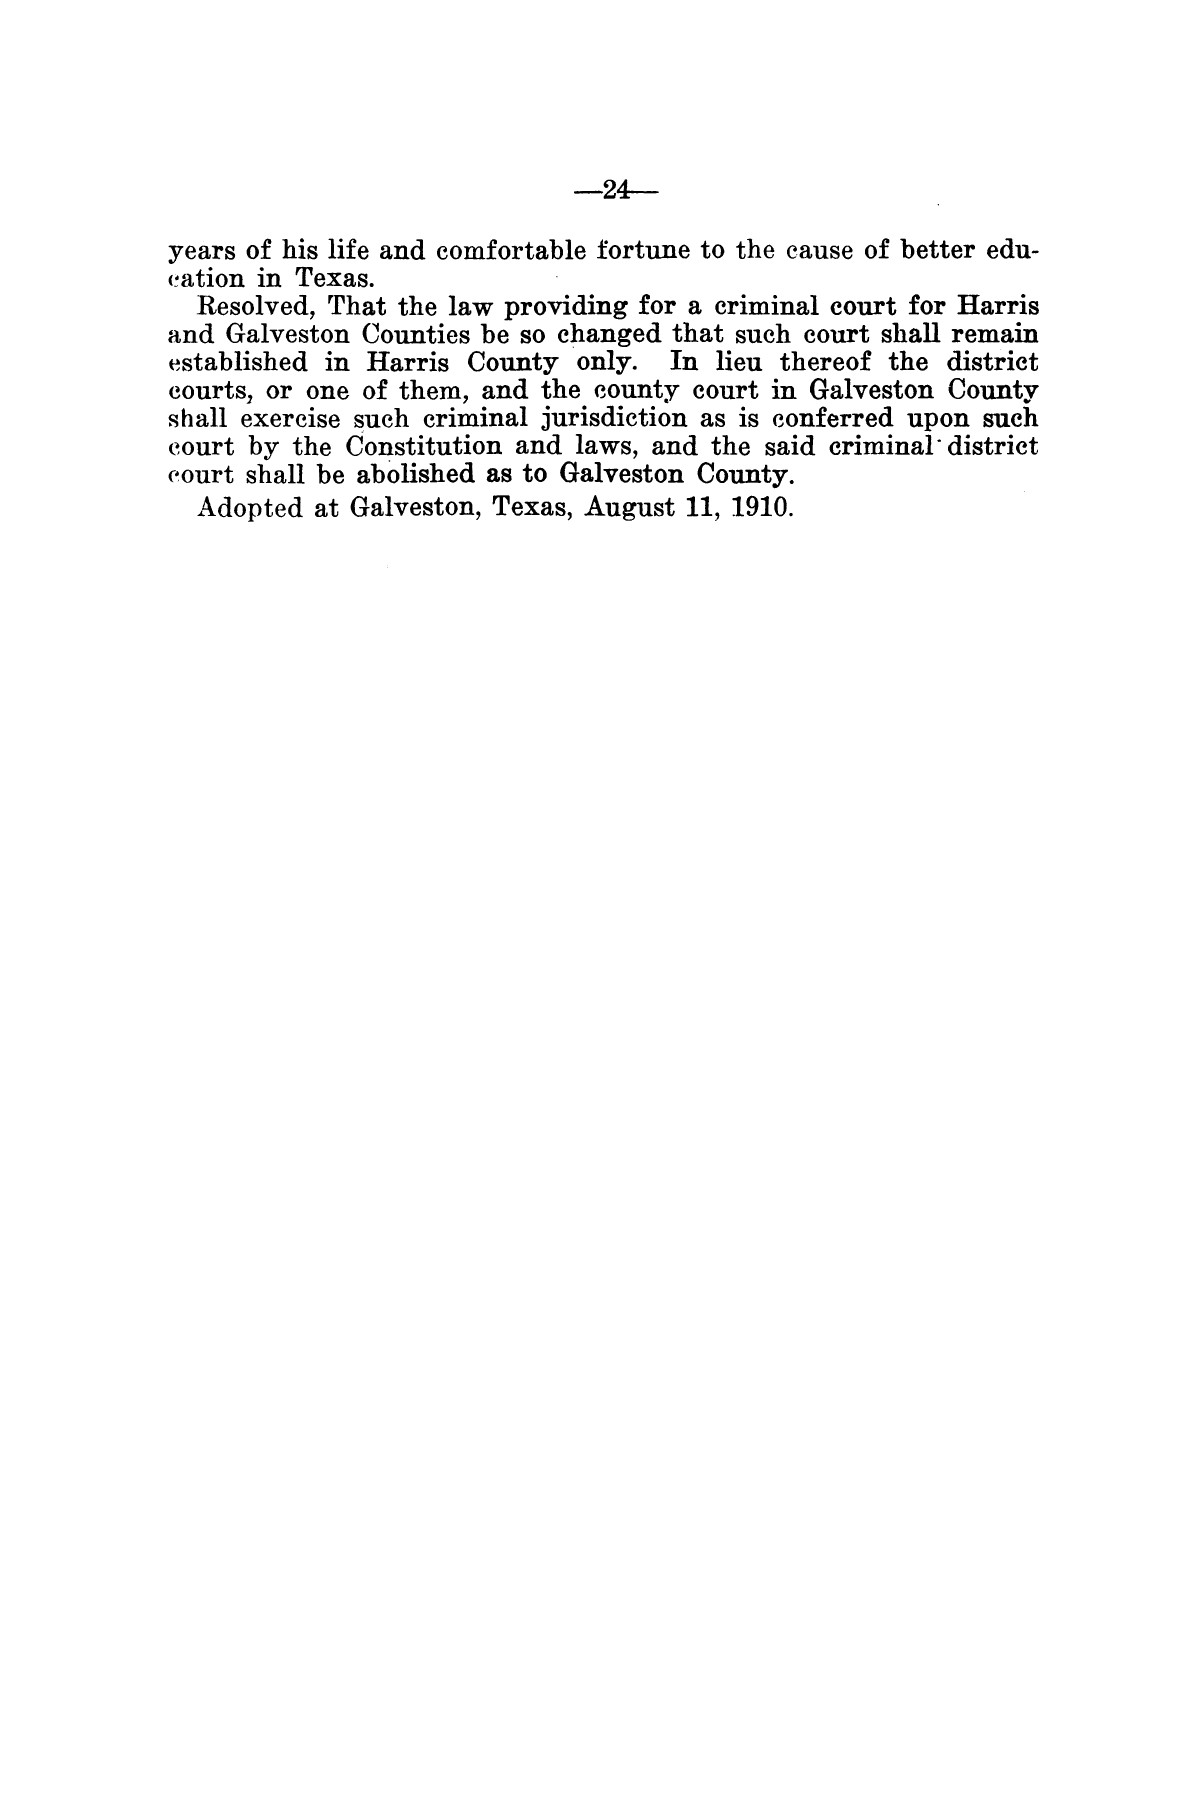 Message of Governor O. B. Colquitt to the thirty-second legislature of Texas.                                                                                                      [Sequence #]: 24 of 24